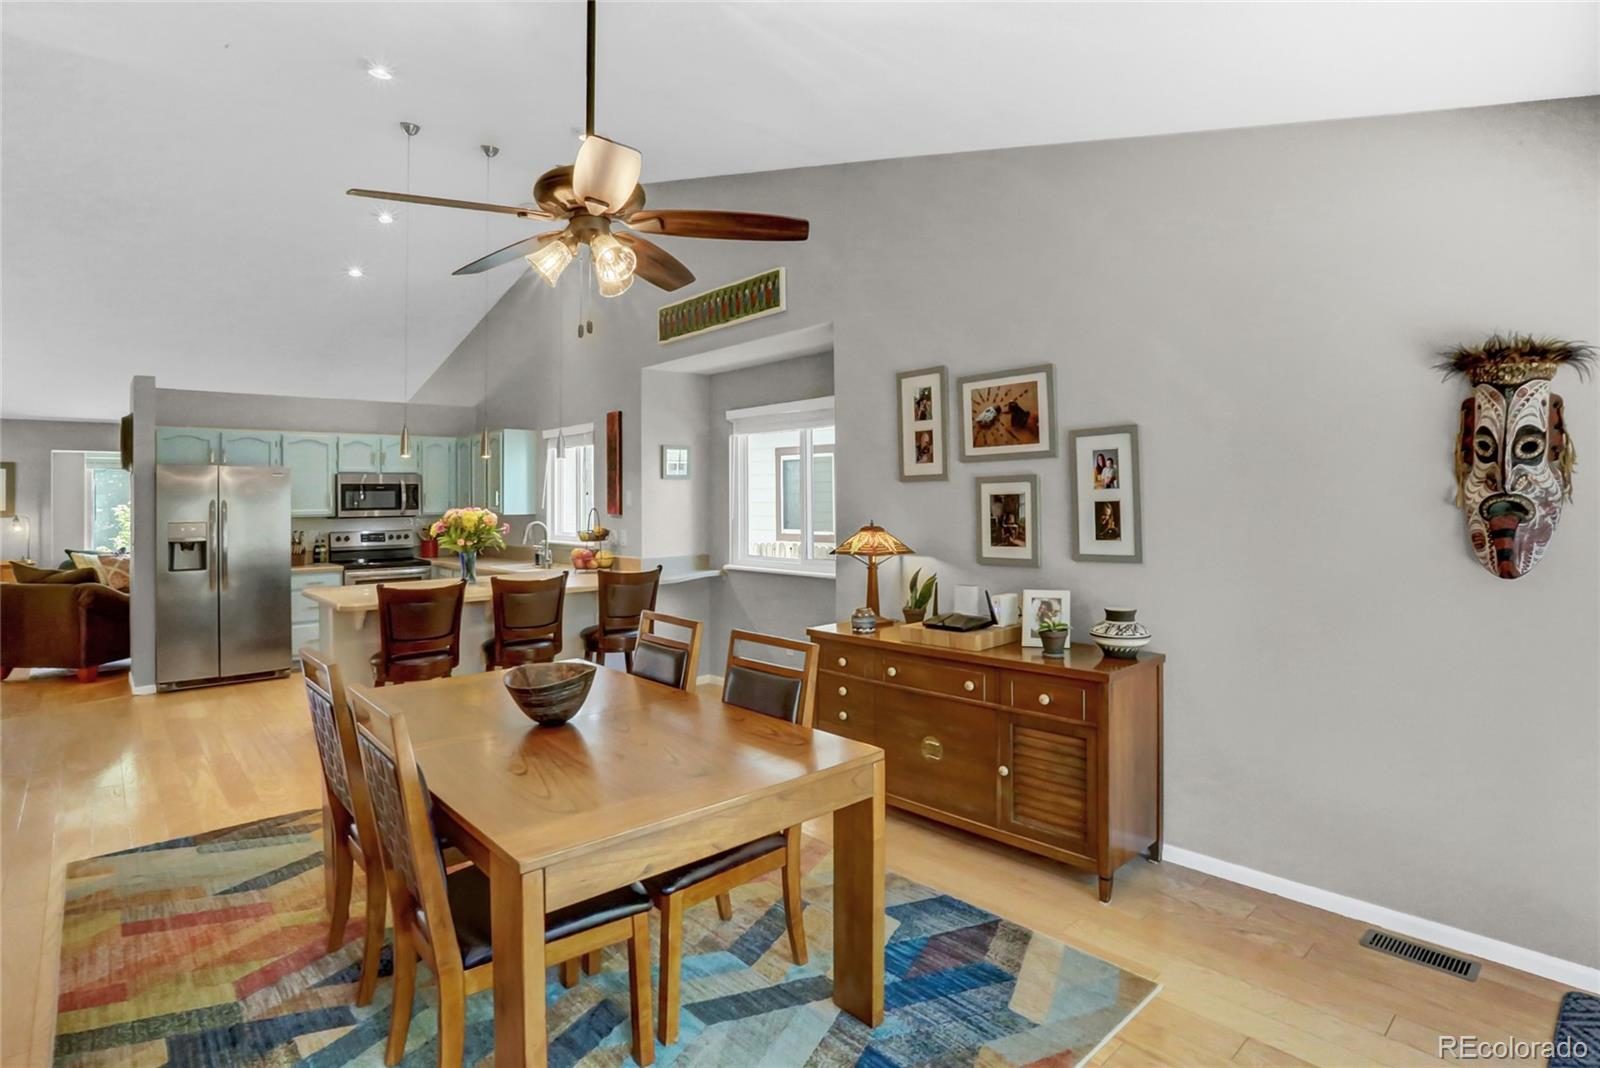 MLS# 7737811 - 11 - 1335 W 133rd Way, Westminster, CO 80234